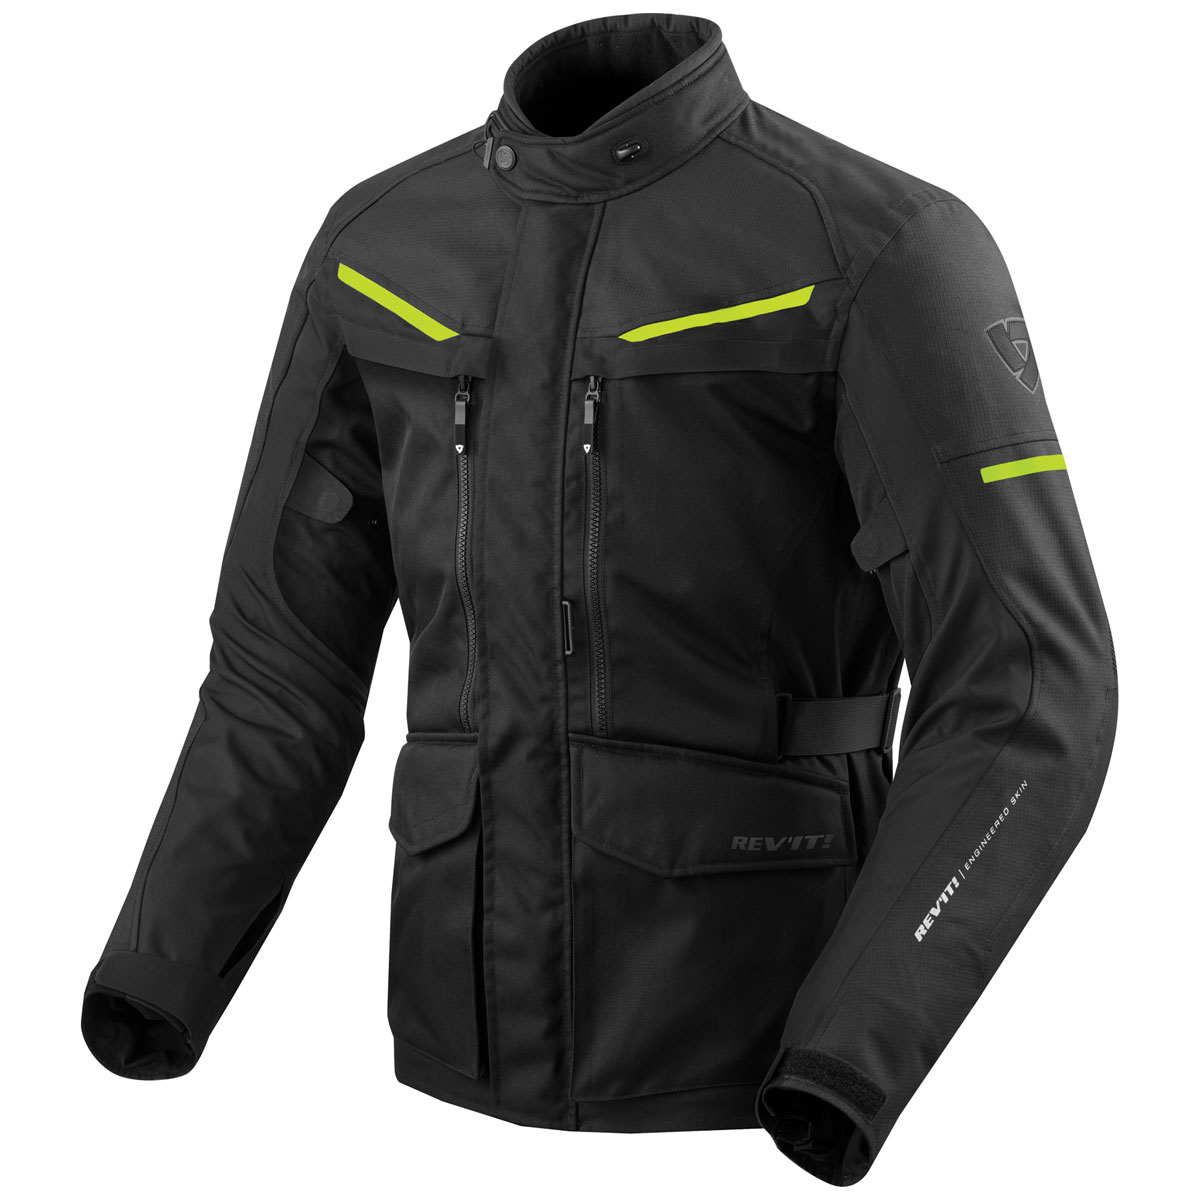 REV′IT! Men's Safari 3 Black/Neon Jacket